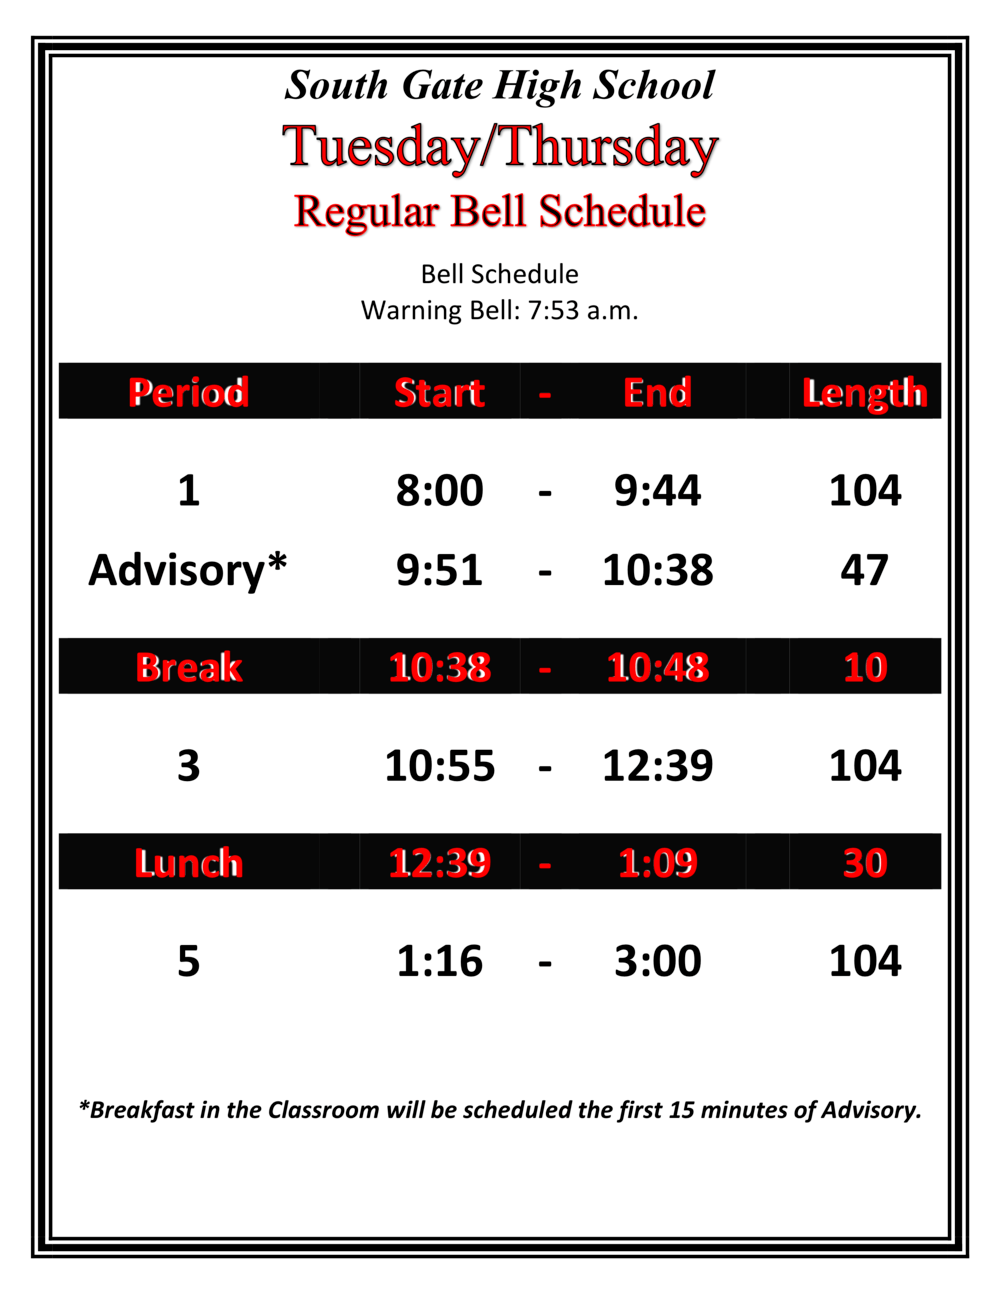 Tuesday Thursday Schedule